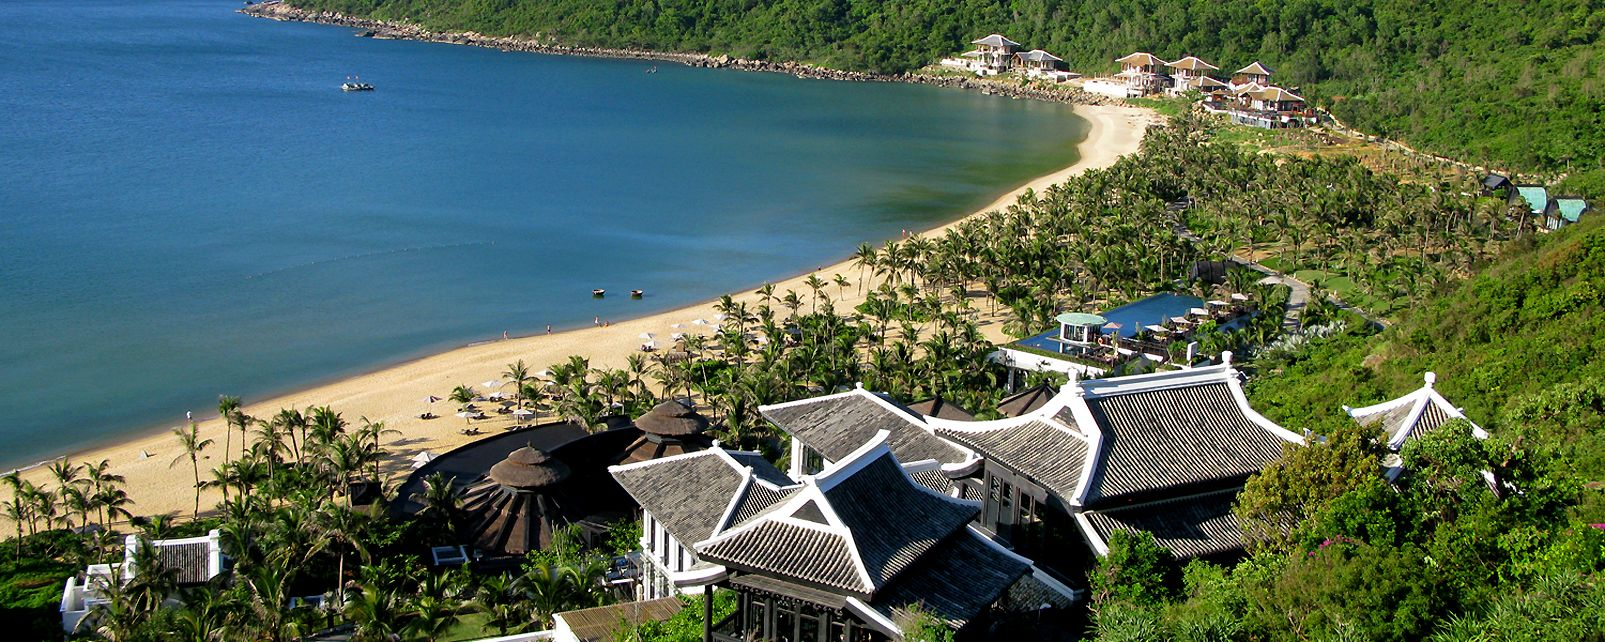 Hotel Intercontinental Sun Peninsula Resort Danang